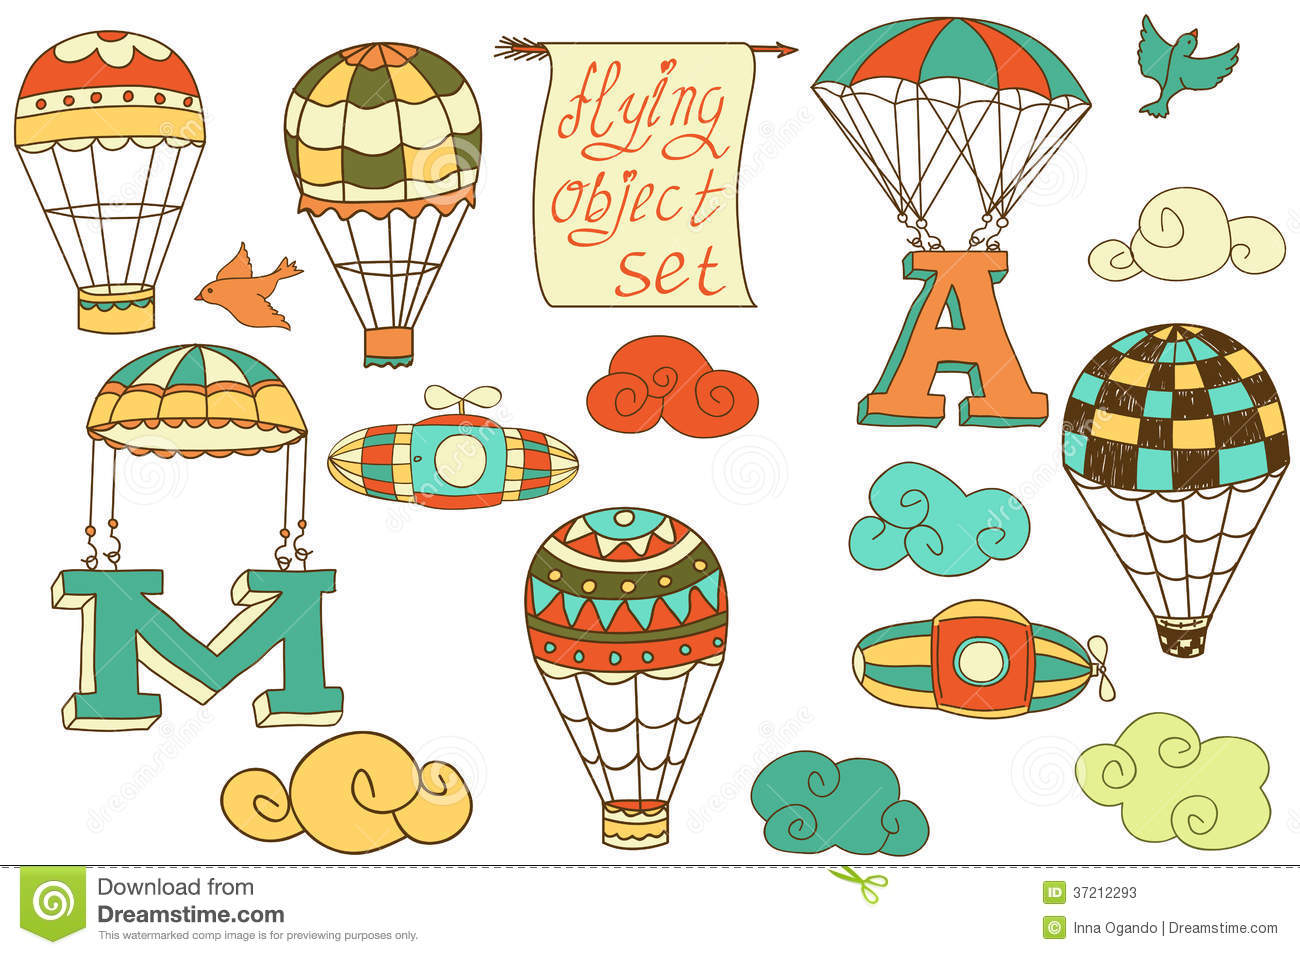 hot objects clipart - photo #38